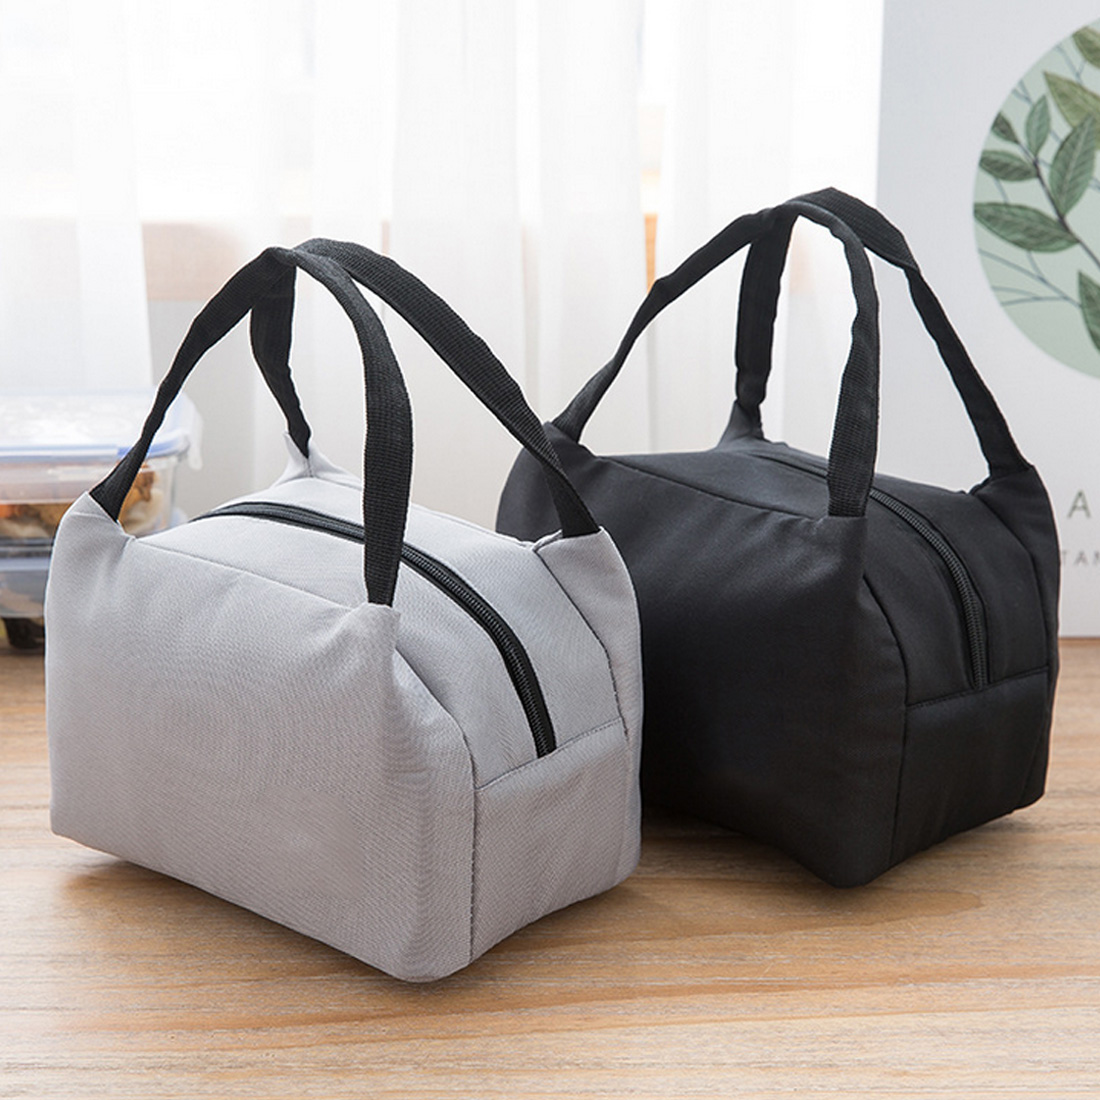 New Insulated Canvas Box lunch bag food bag lunchbox school child Insulated Canvas Box Tote Bags Thermal Cooler in Lunch Bags from Luggage Bags